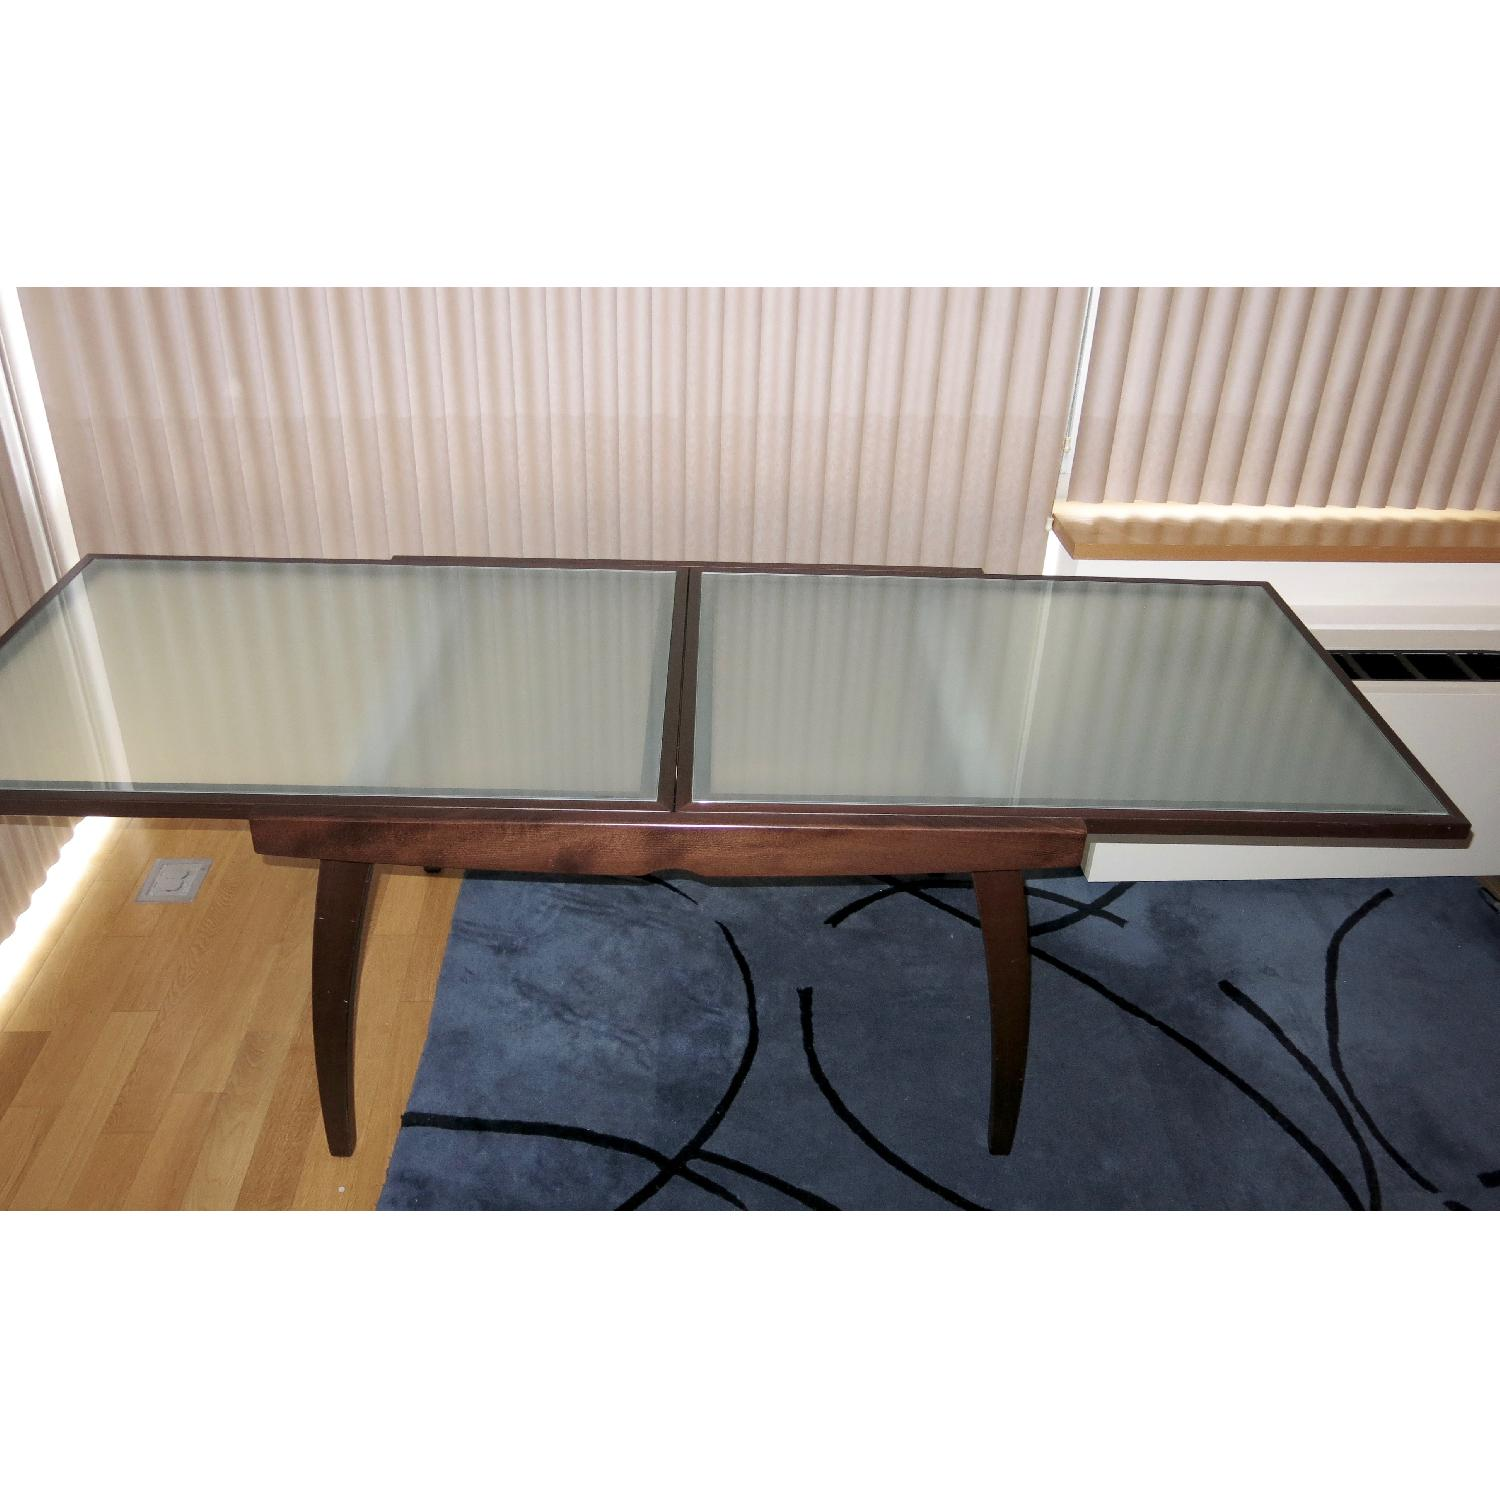 Calligaris Dining Table - image-4